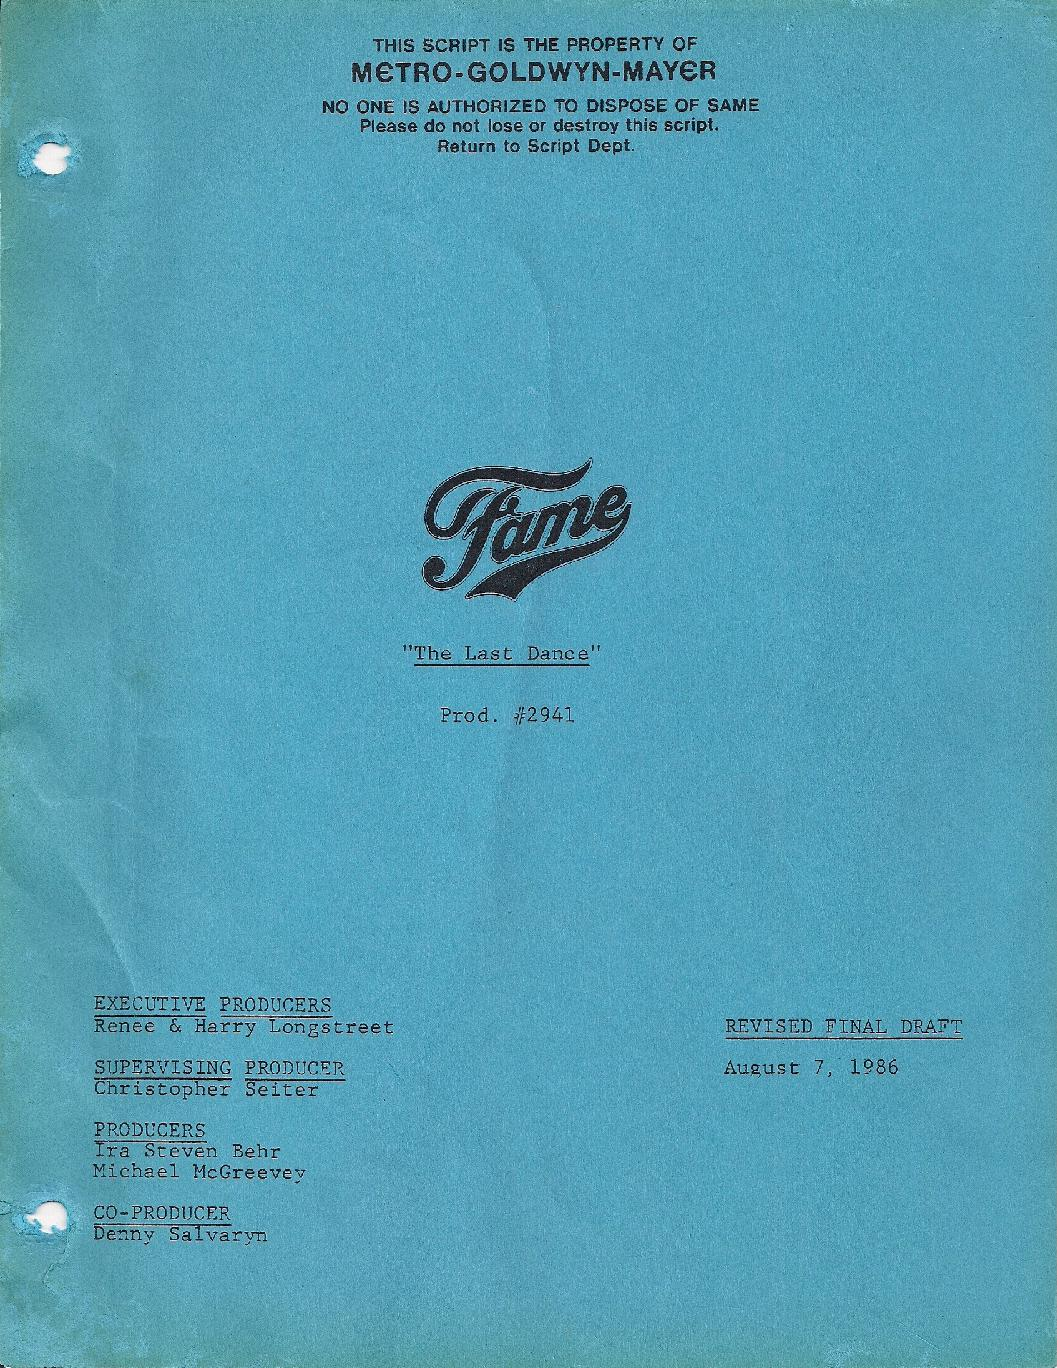 dance script Information about the font dancing script and where to buy it.